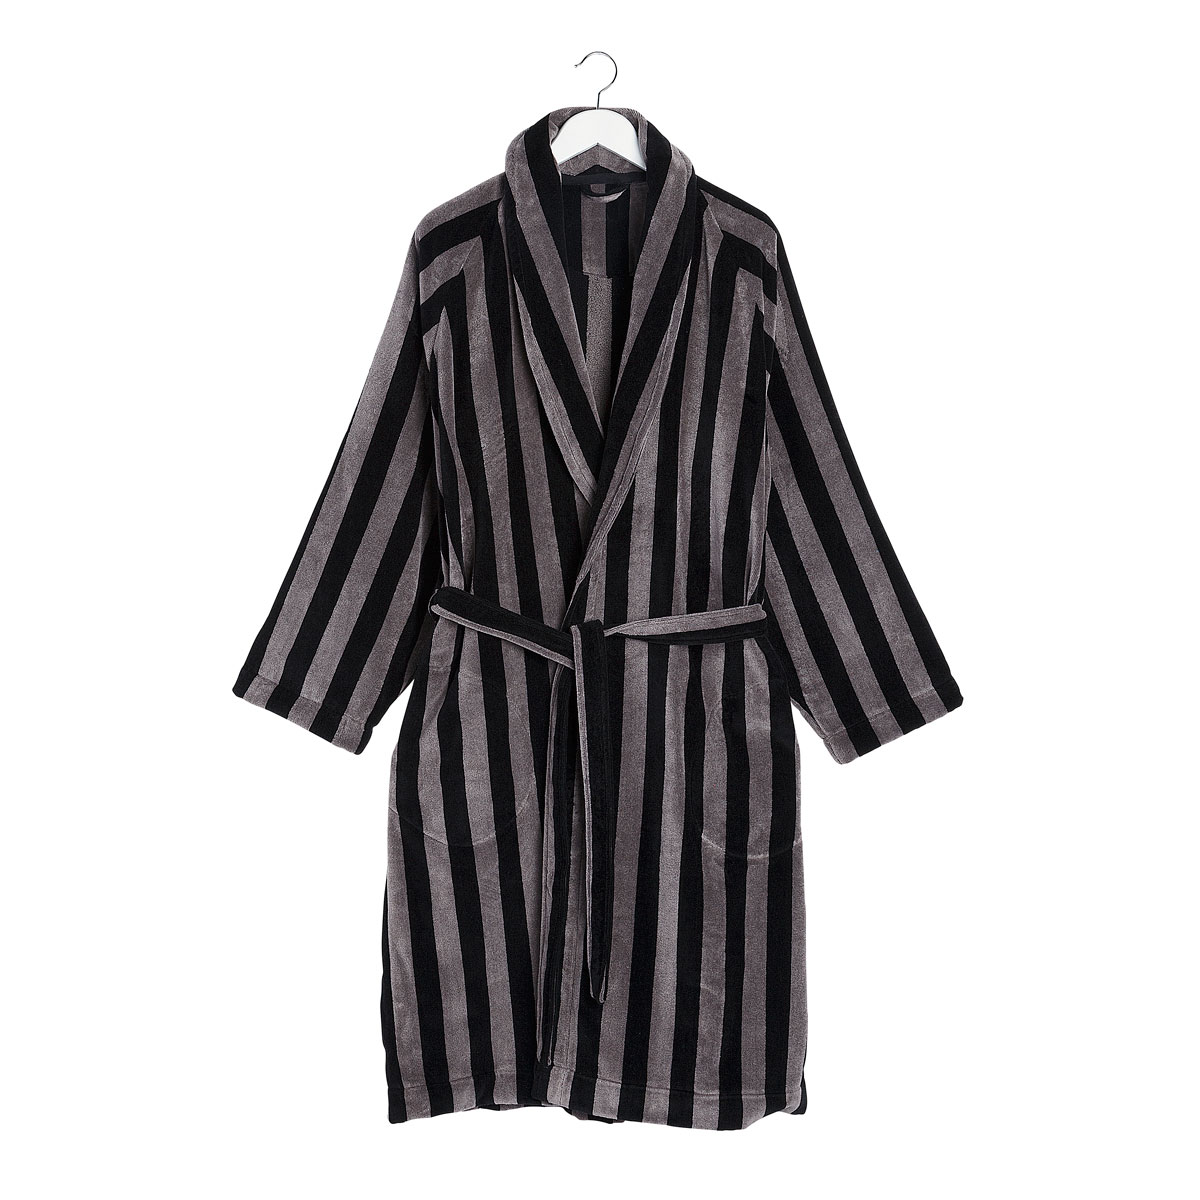 Free shipping on women's robes at goodforexbinar.cf Shop by length, style, color from Barefoot Dreams, Natori, UGG, Lauren Ralph Lauren & more from the best brands. Free shipping and returns.